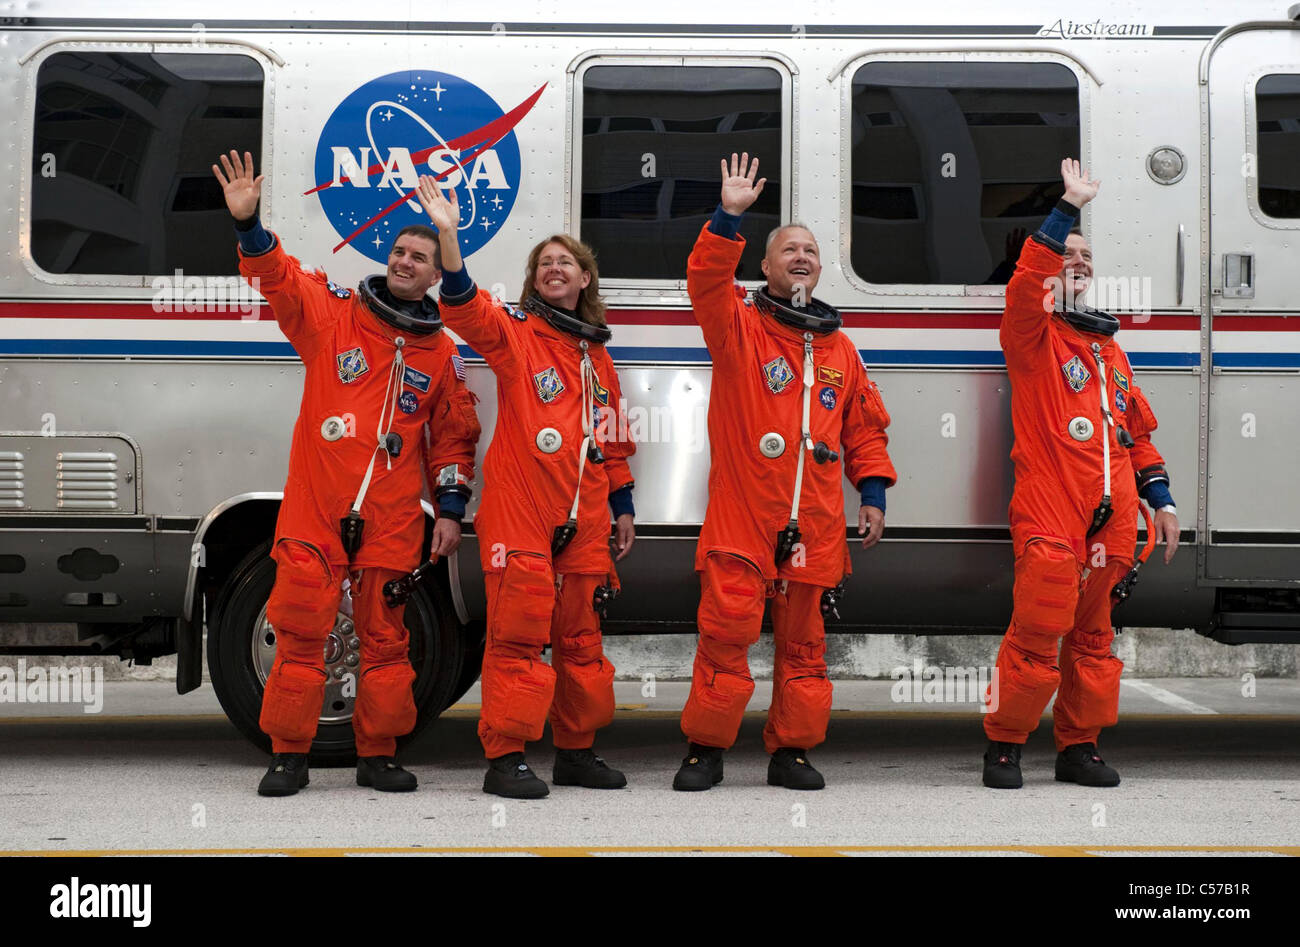 Space shuttle Atlantis crew, final mission STS135 - Stock Image